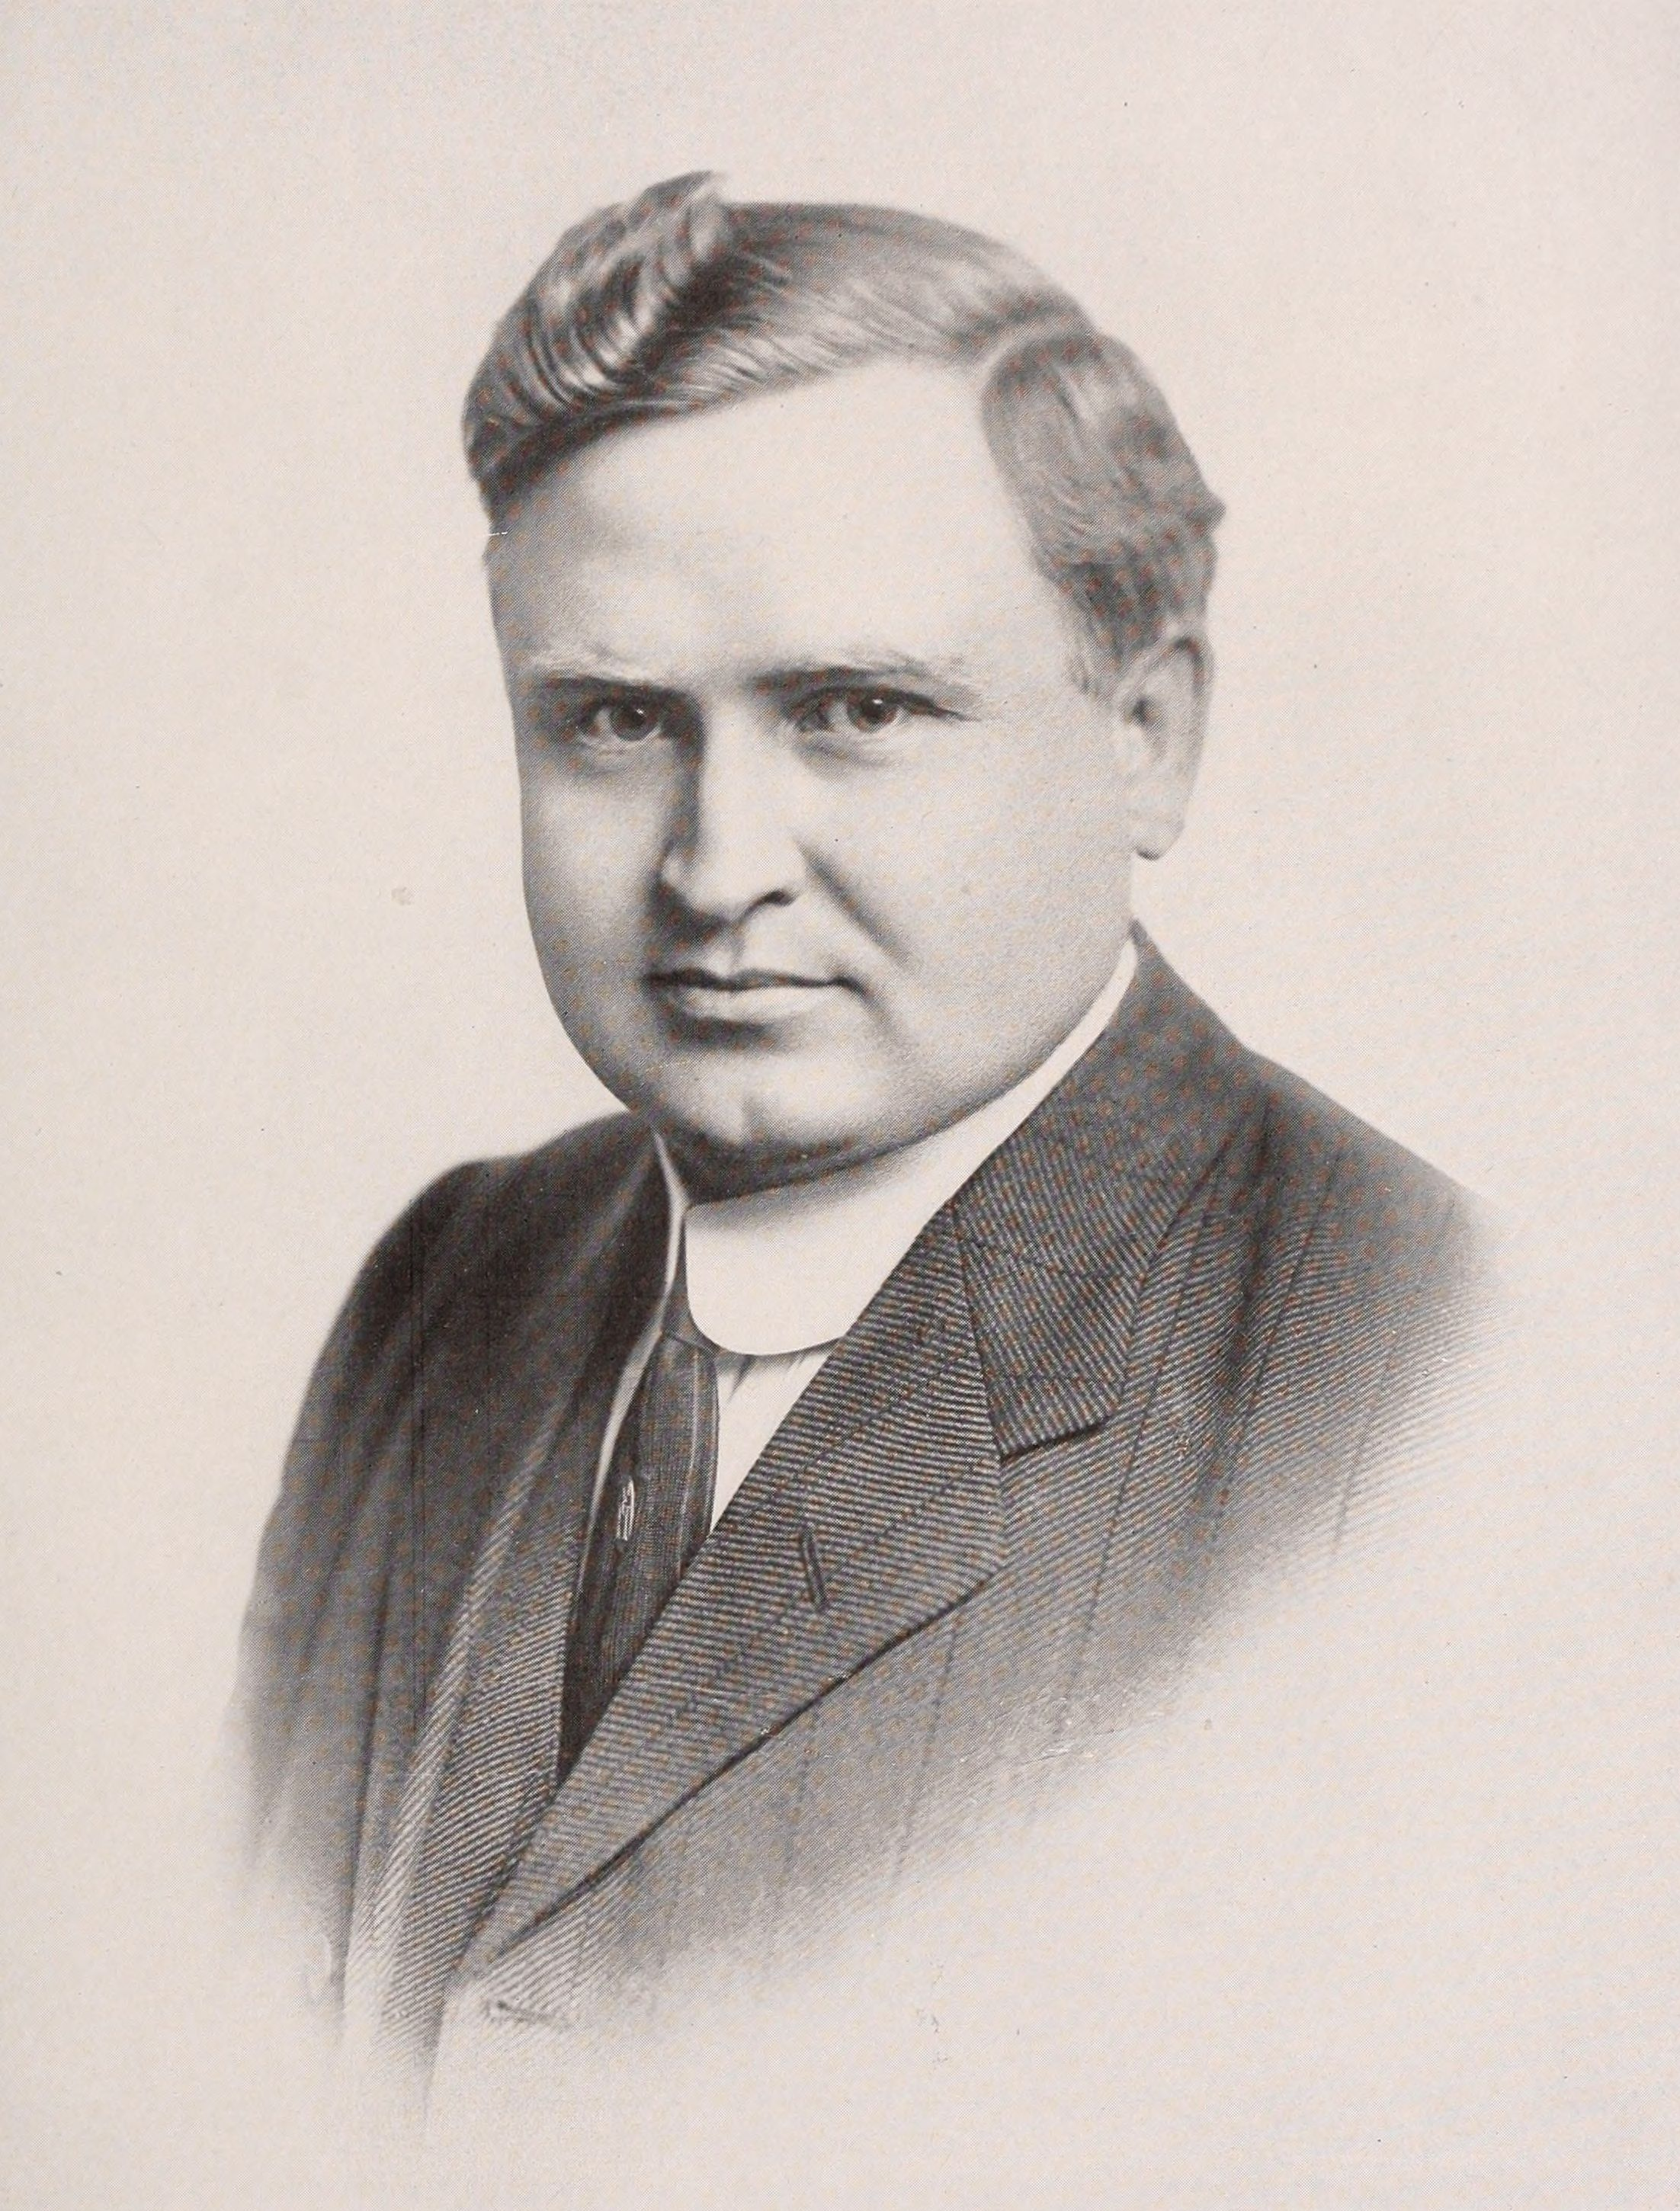 Image of Fred Hartsook from Wikidata